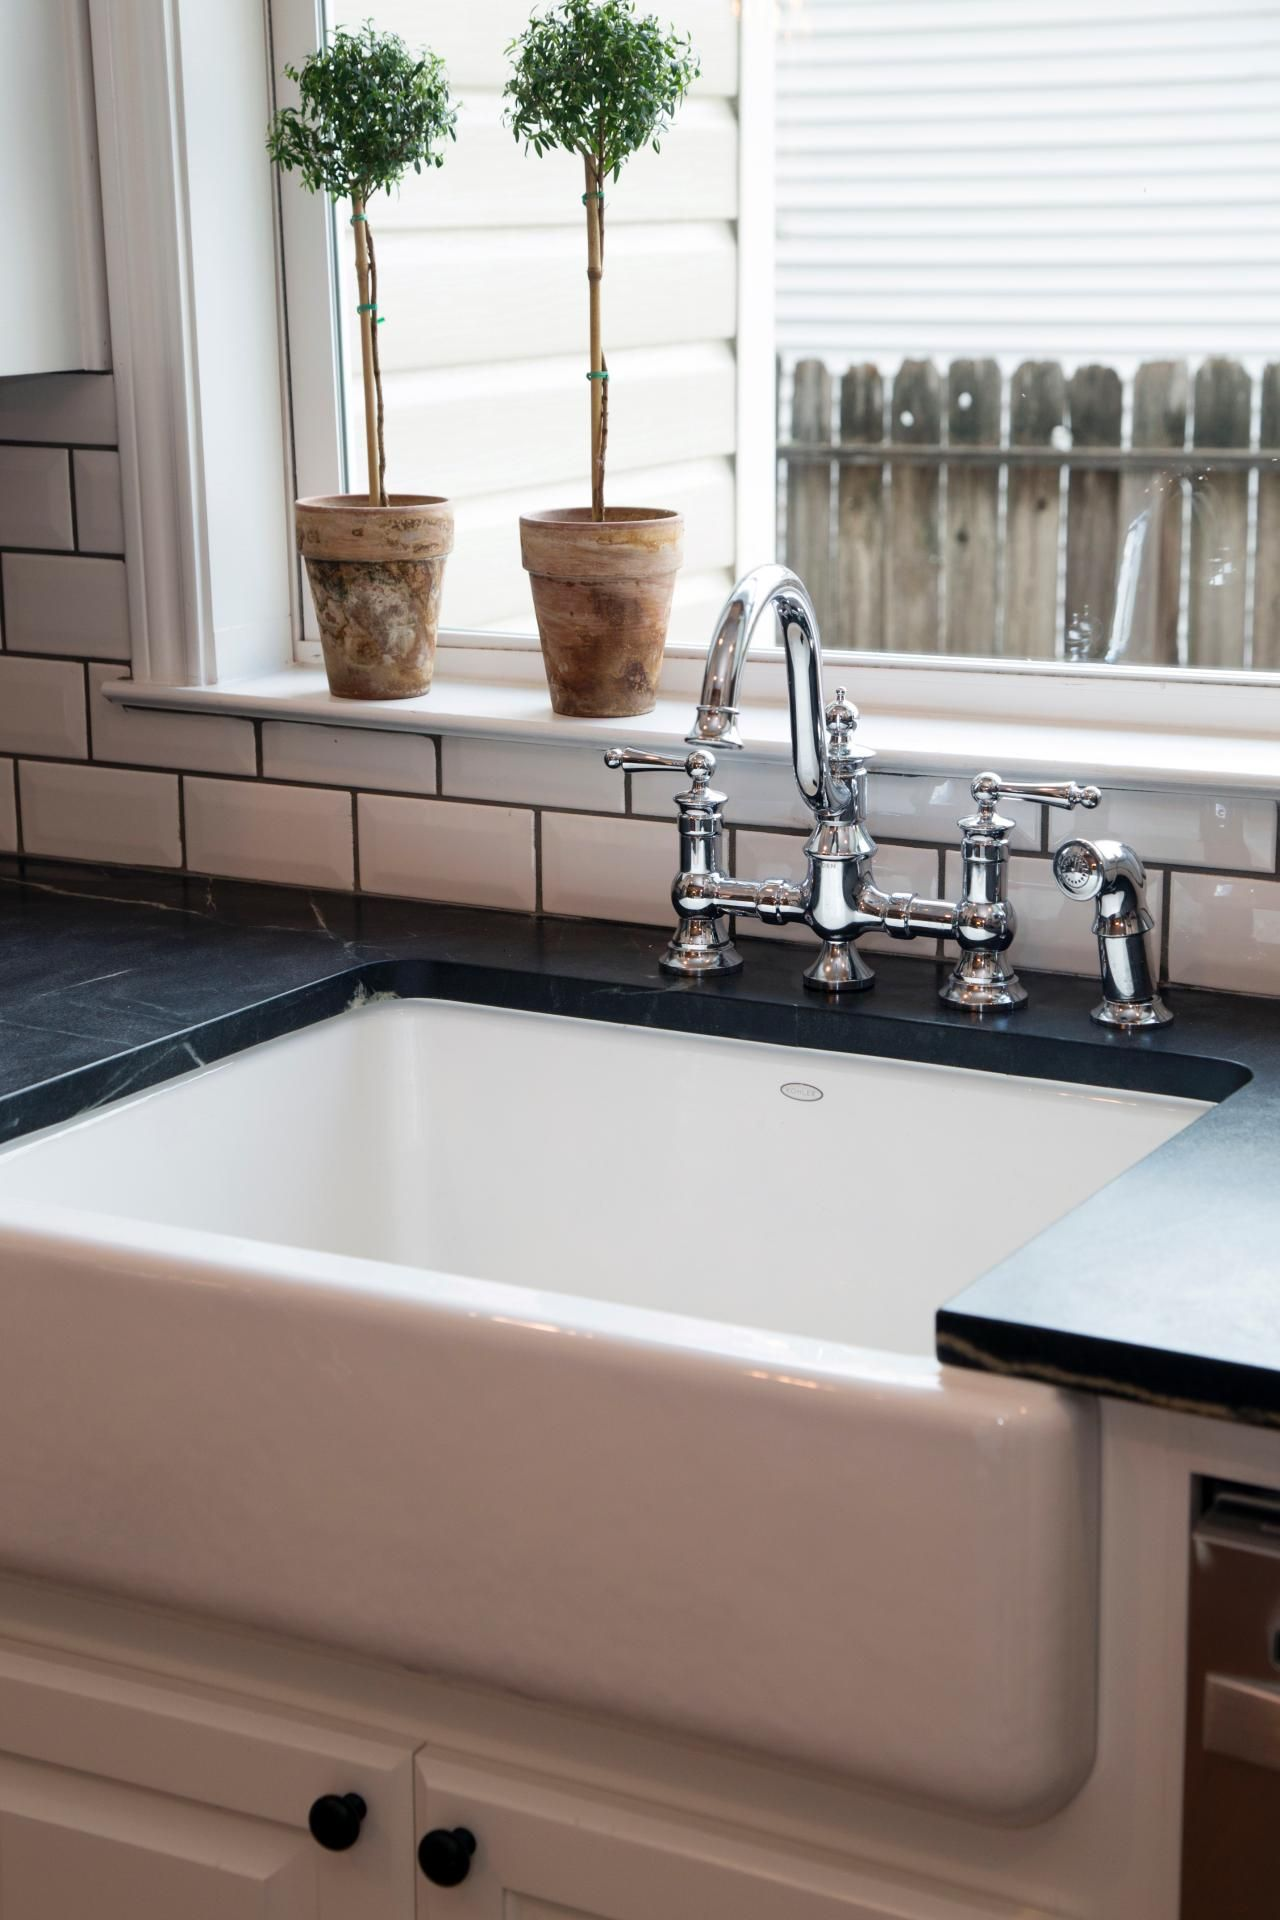 Fixer upper kitchen sink - A 1940s Vintage Fixer Upper For First Time Homebuyers